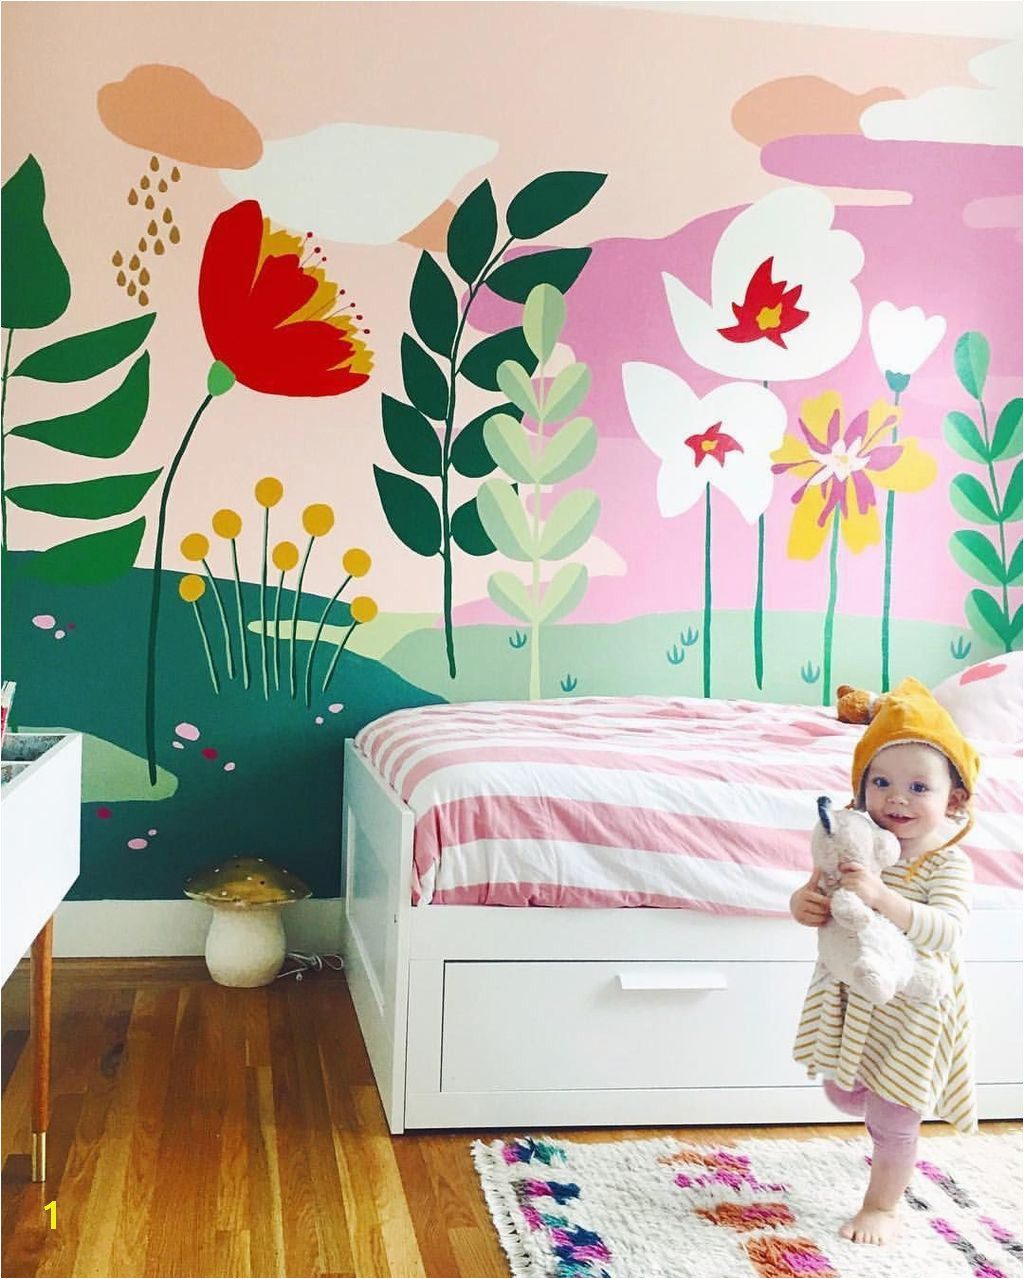 Easy Wall Mural Ideas 20 Easy Playroom Mural Design Ideas for Kids Diy